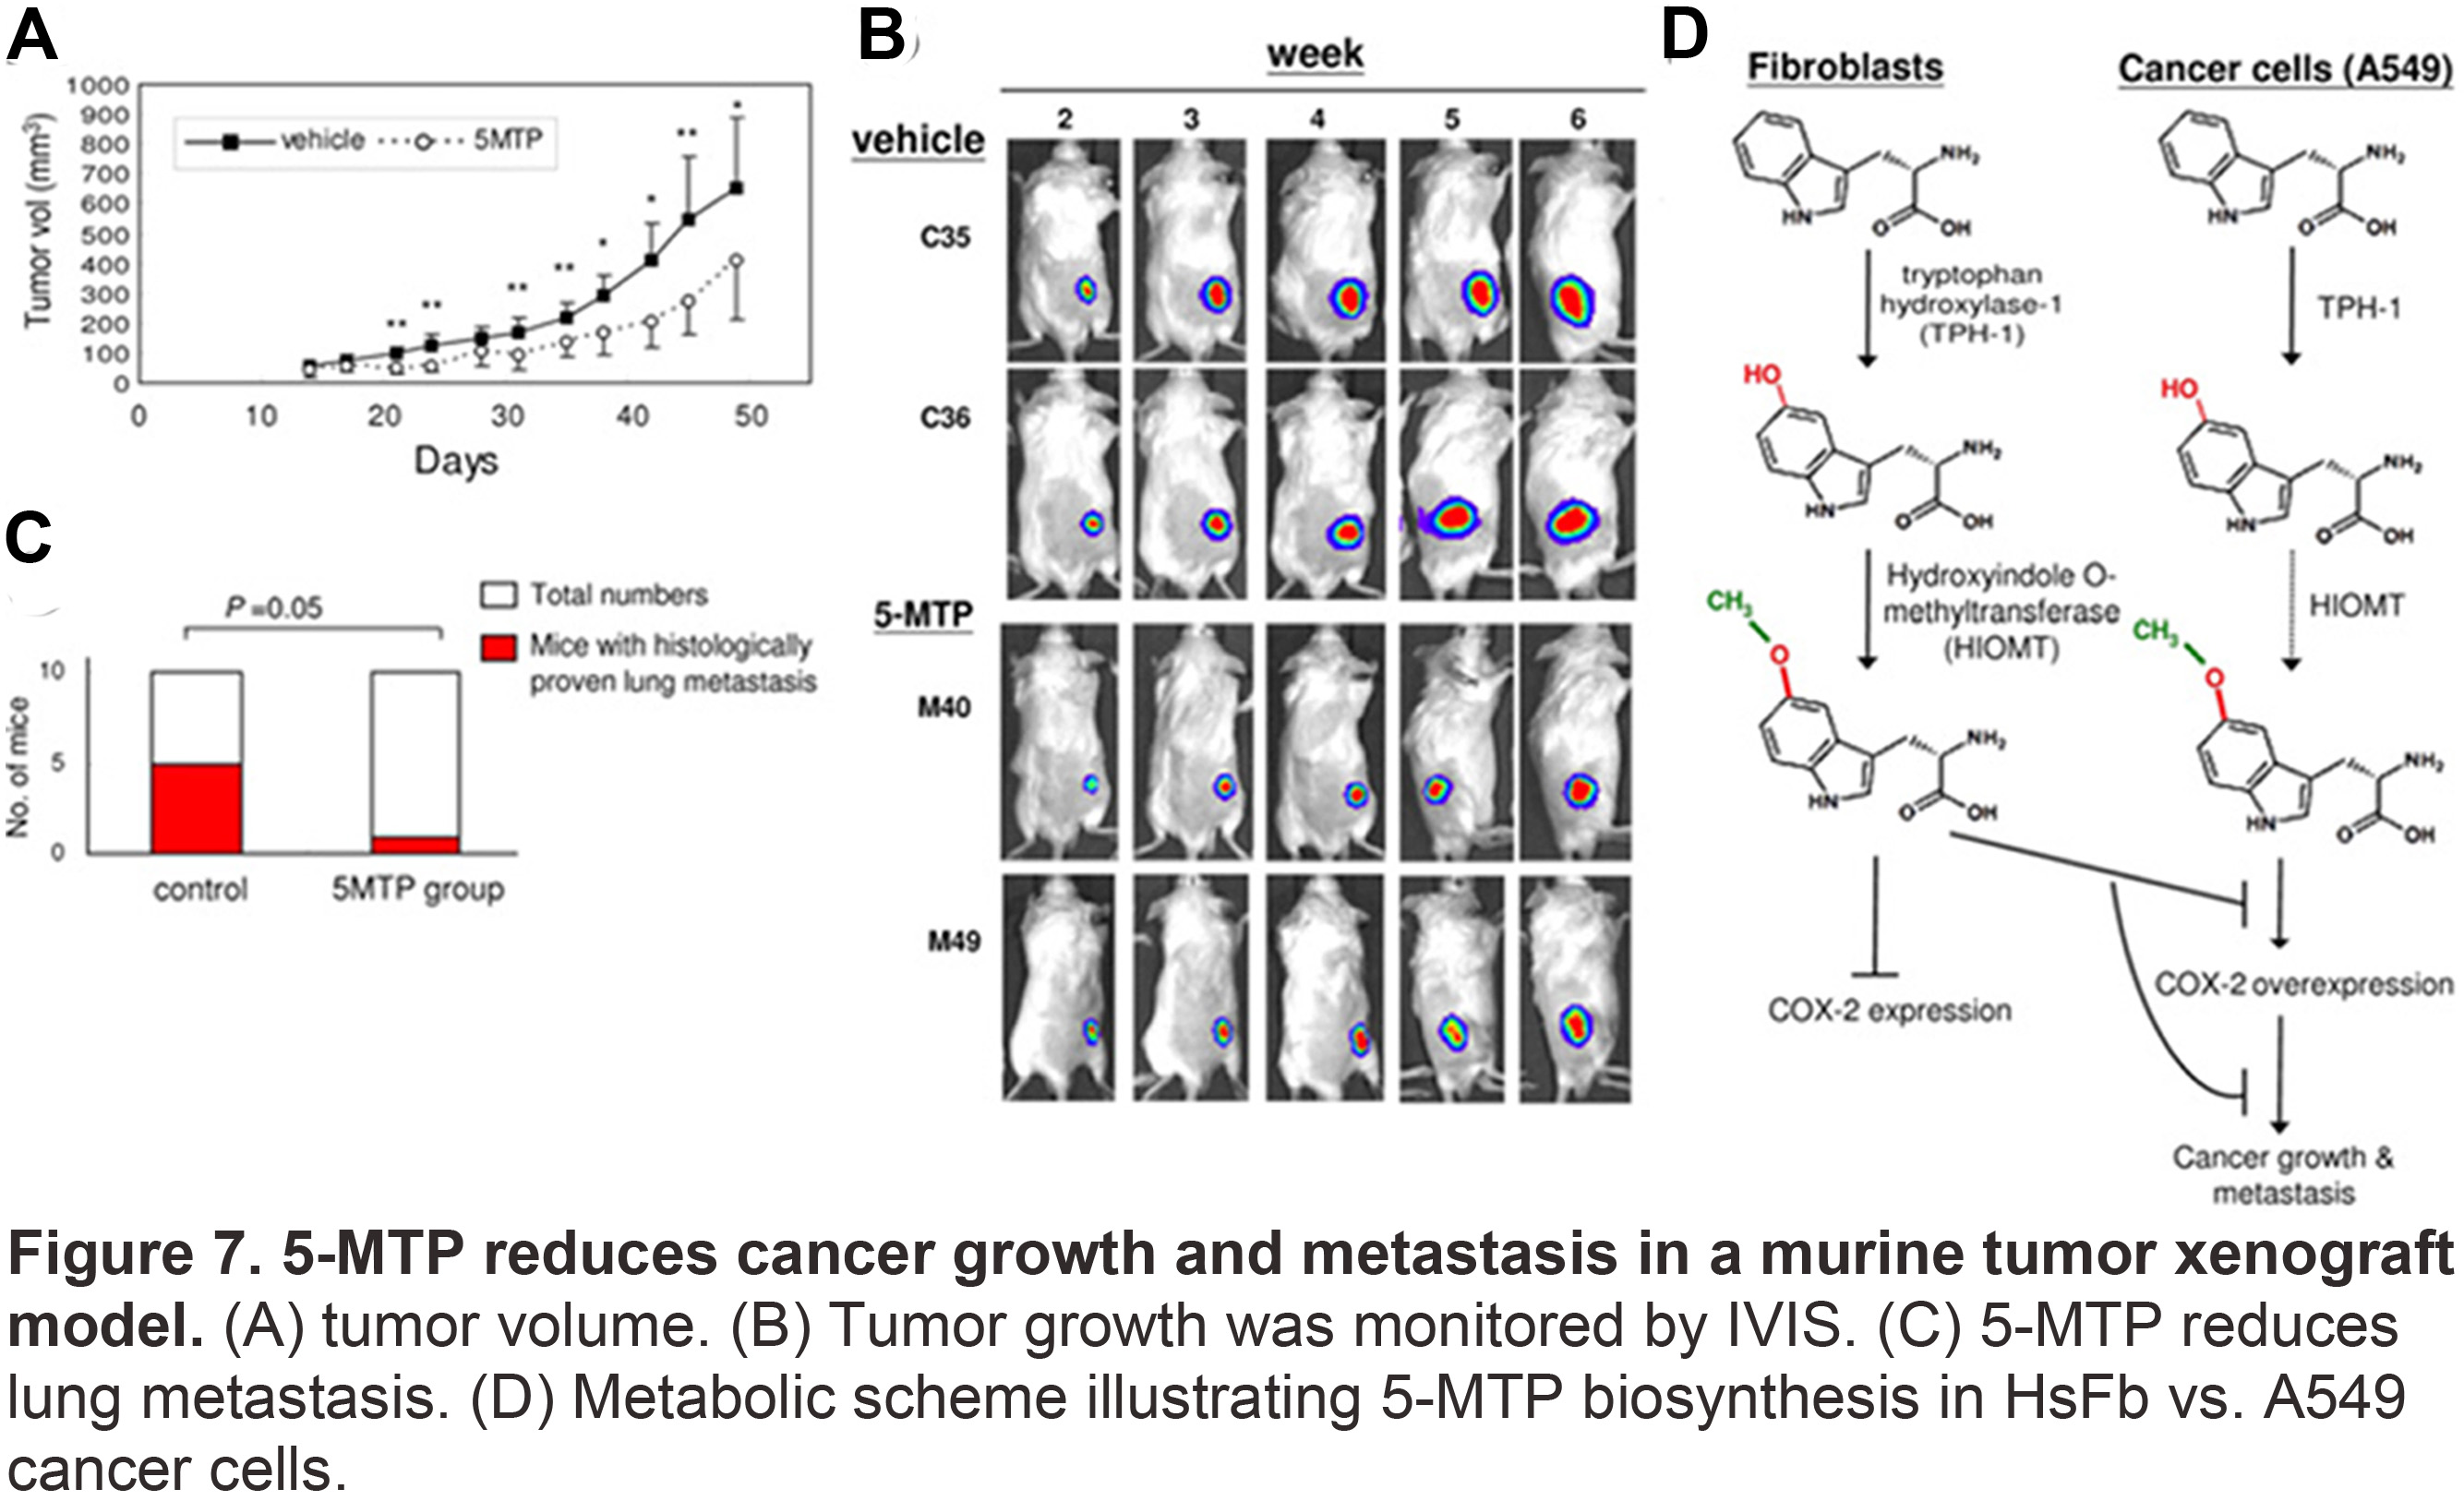 5-MTP reduces cancer growth and metastasis